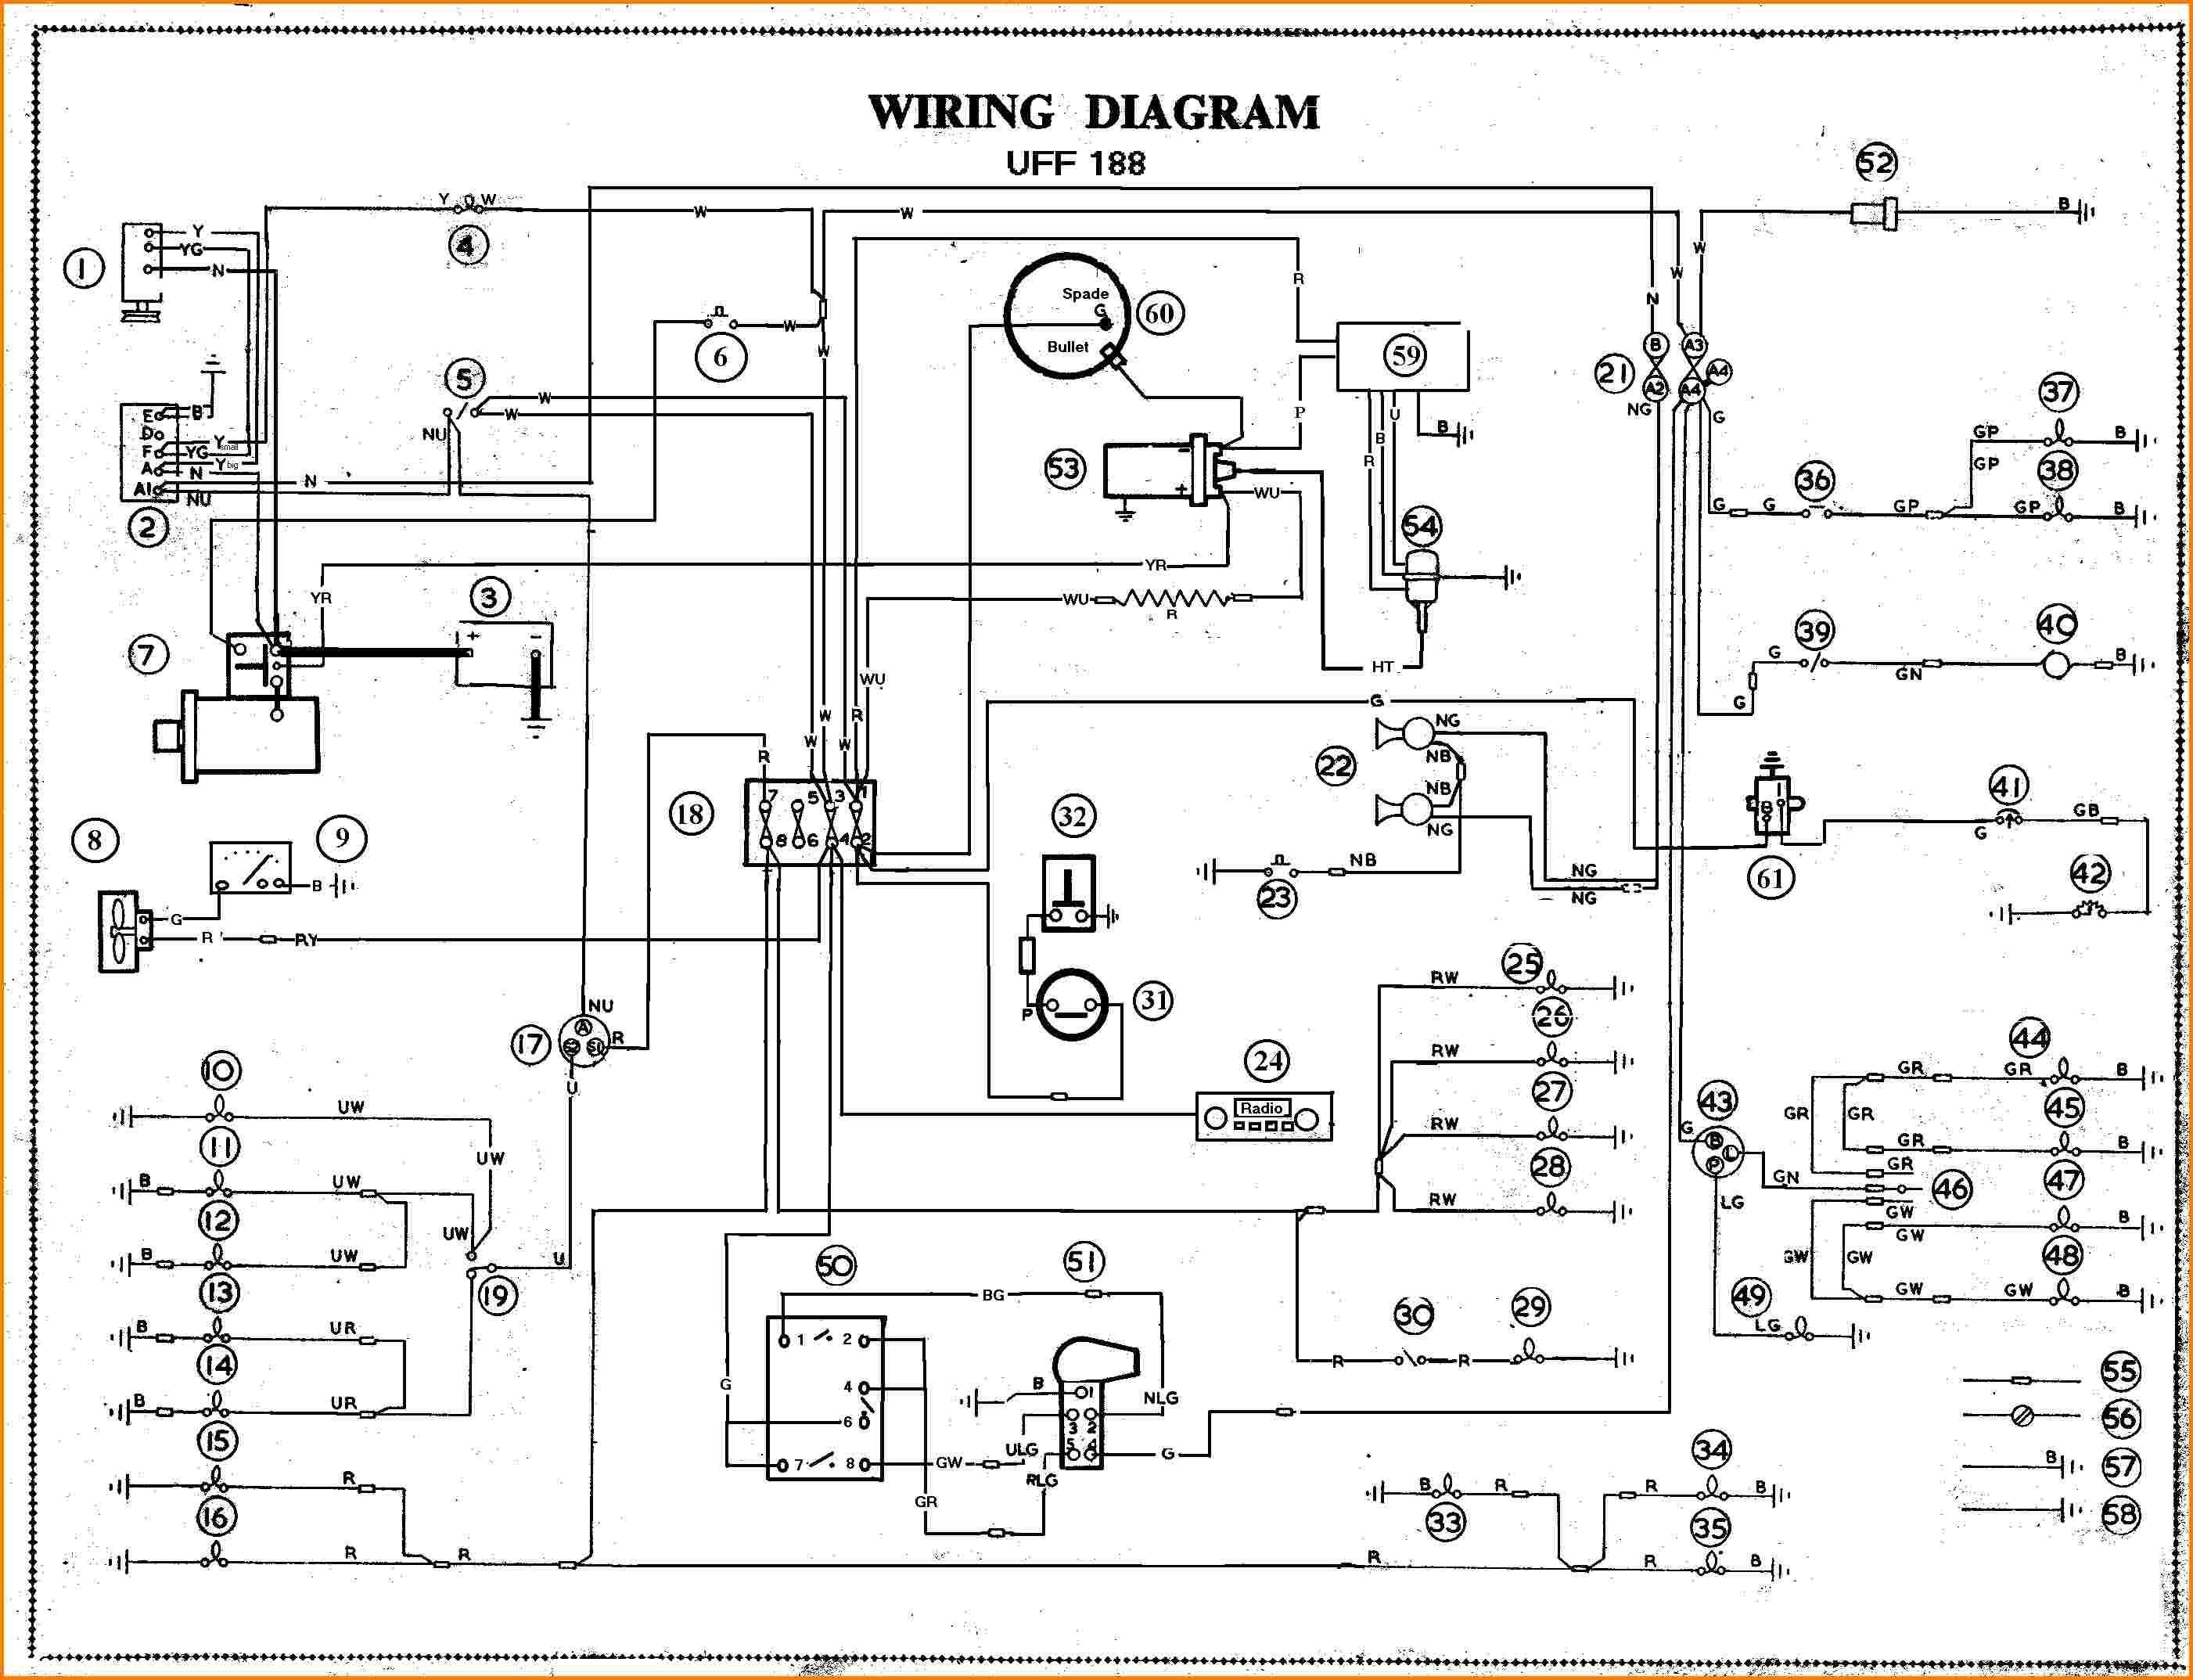 auto electrical wiring diagram software | free wiring diagram automotive wiring diagram free download